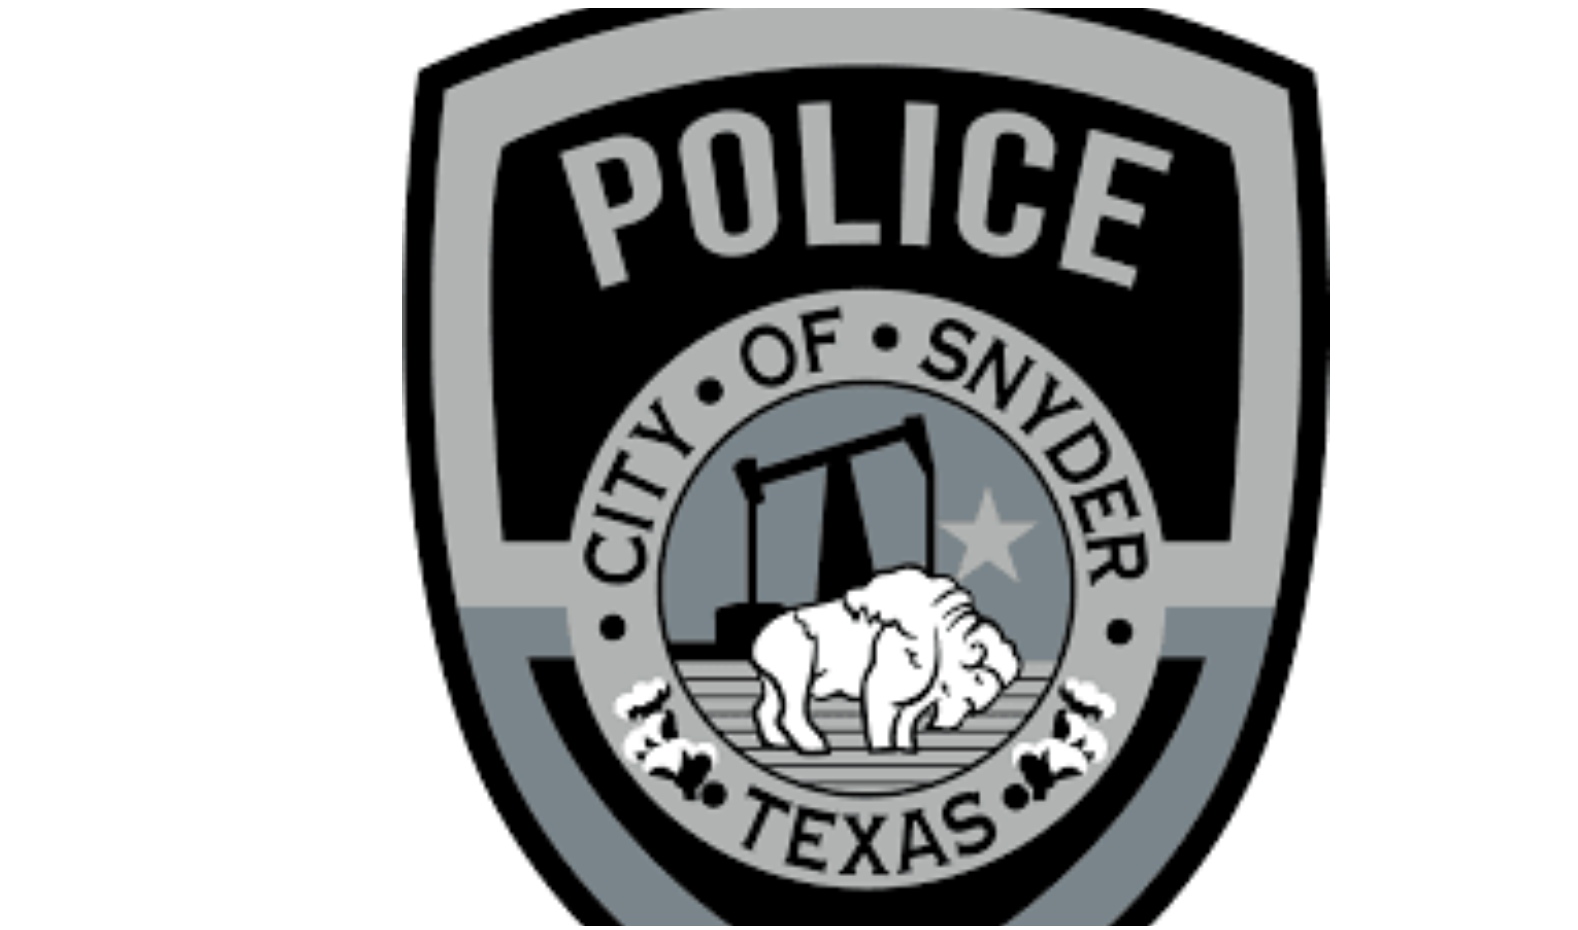 City of Snyder Police Badge